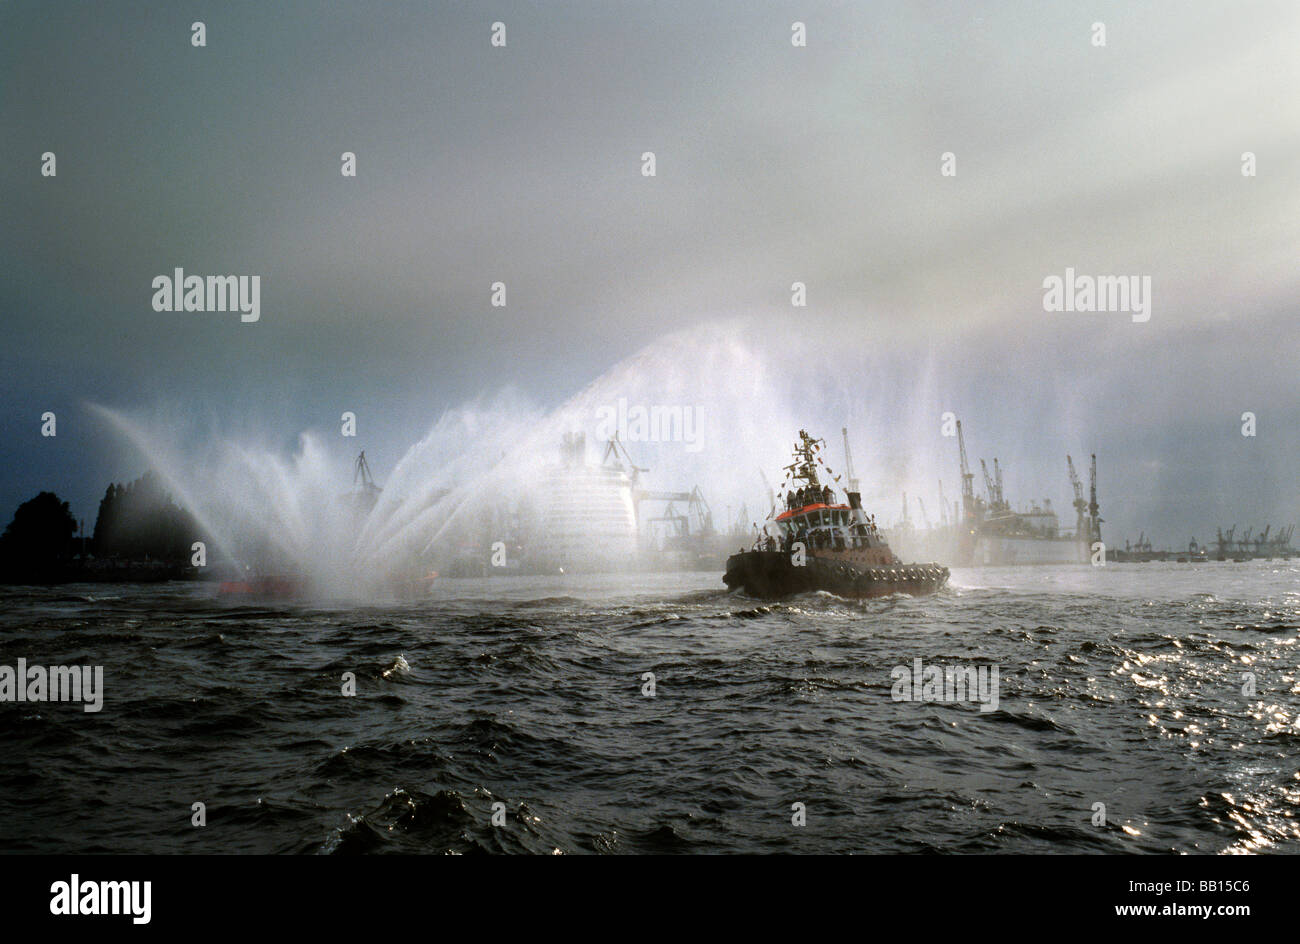 May 9, 2009 - The traditional Ballett of the Tugs (Schlepperballett) during the 820th Hafengeburtstag in the port - Stock Image